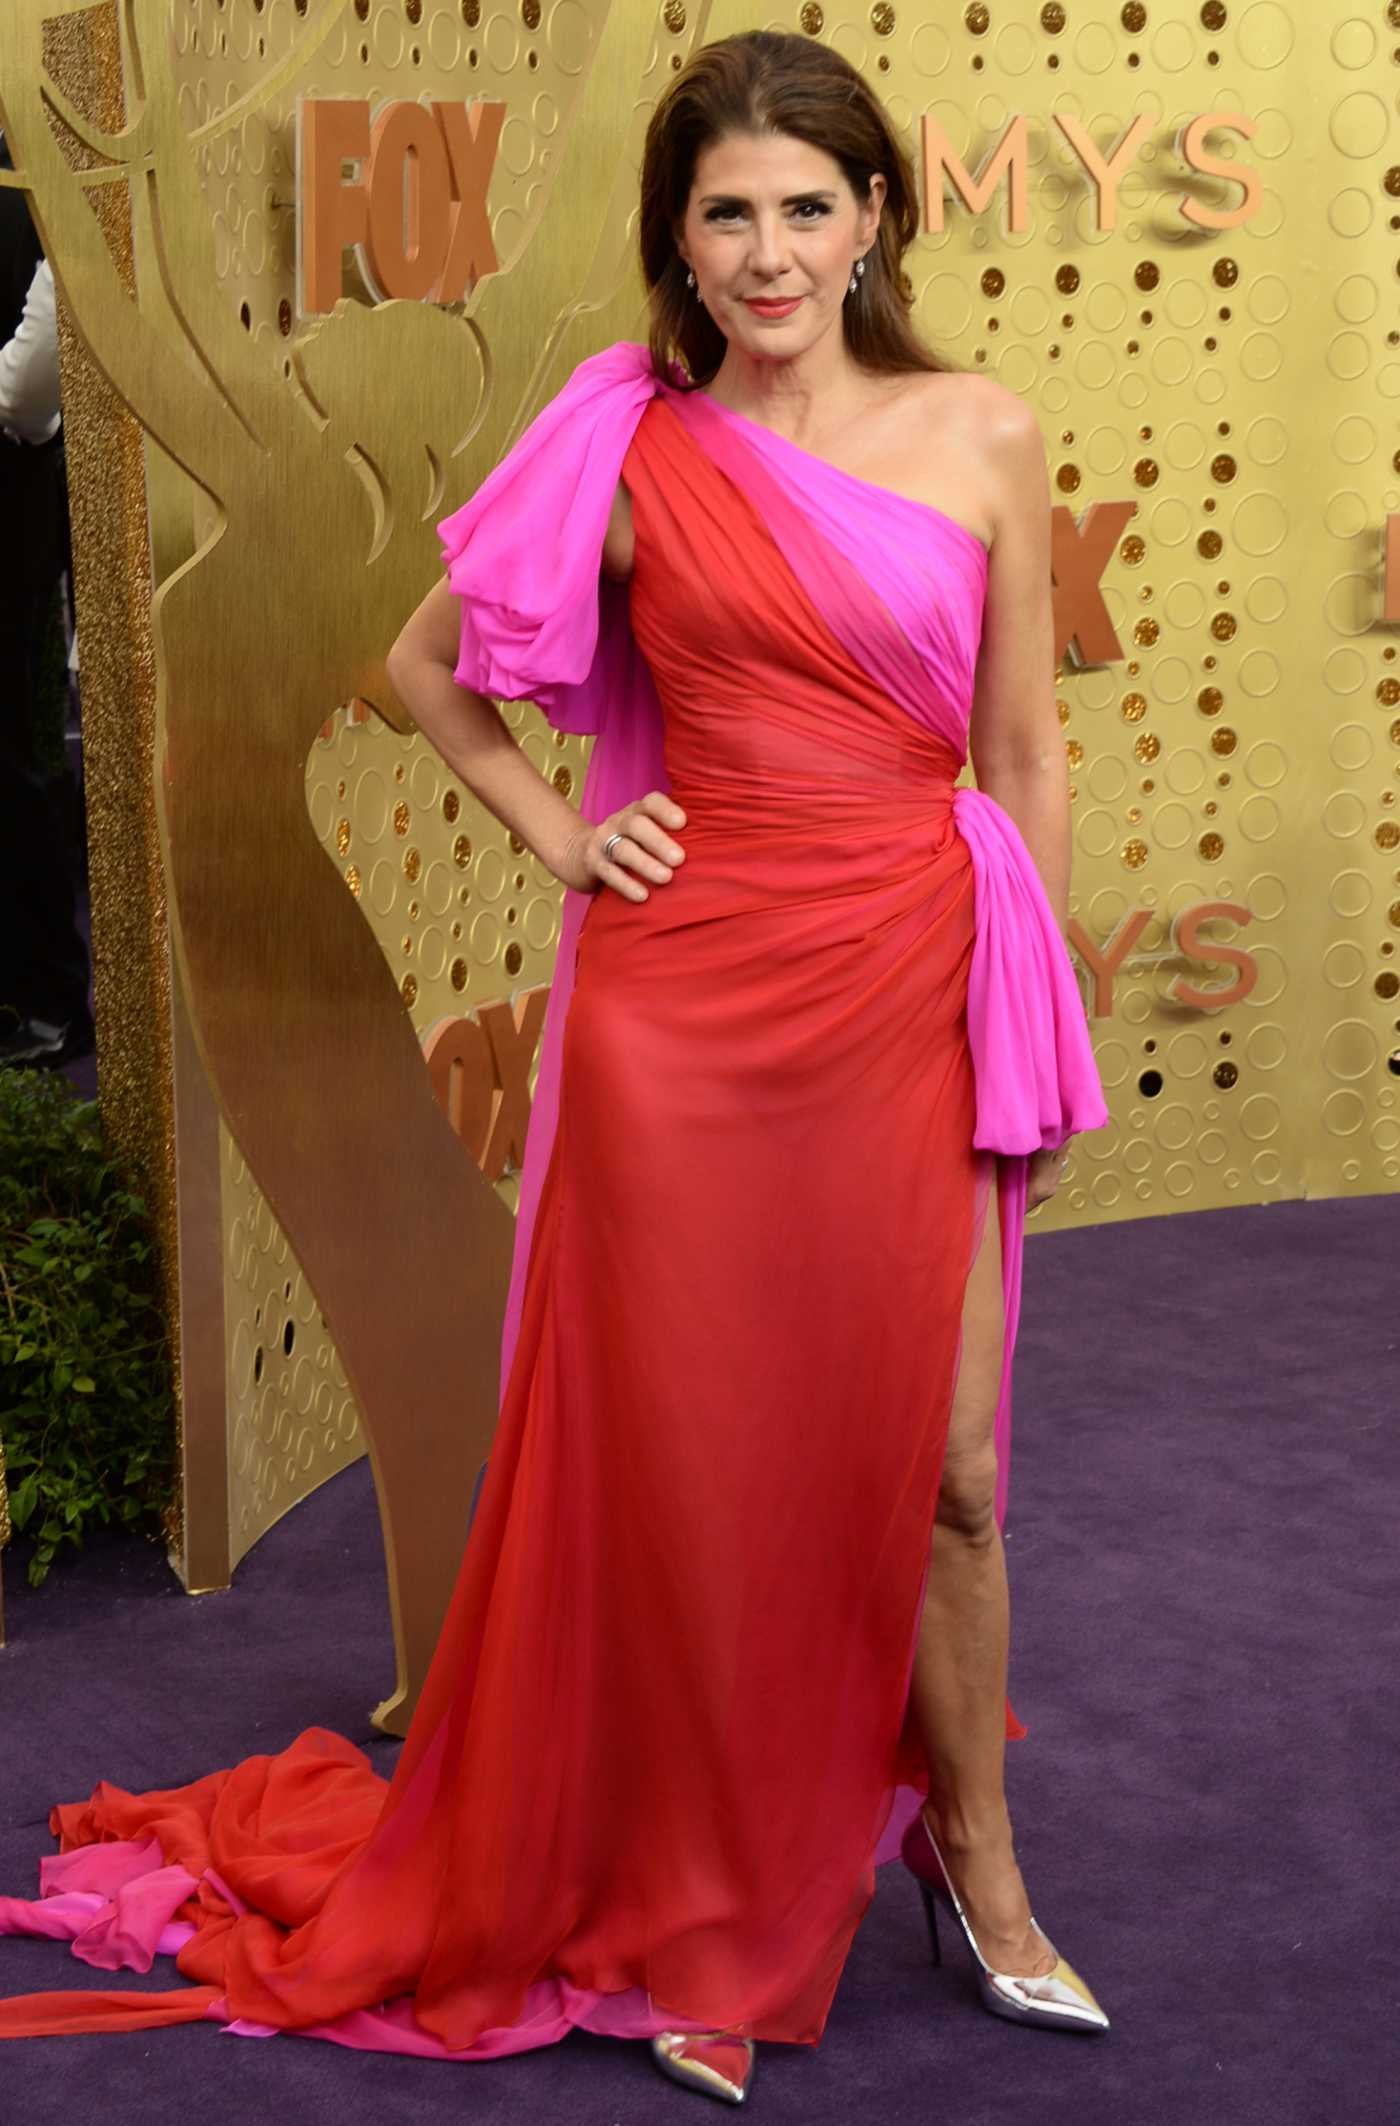 Marisa Tomei Attends the 71st Emmy Awards at Microsoft Theater in Los Angeles 09/22/2019